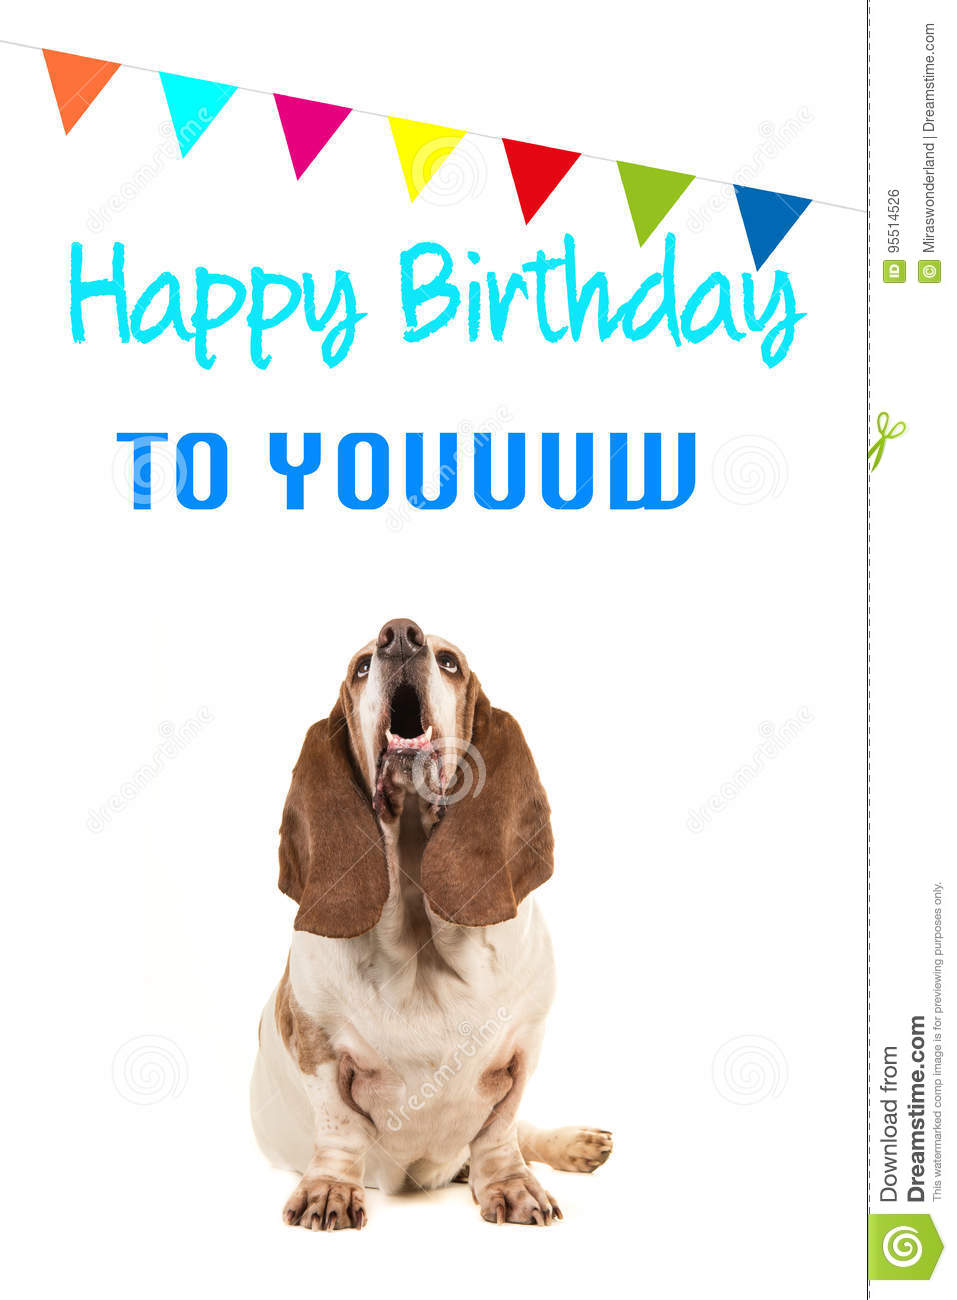 Basset Hound Looking Up And Singing Text Happy Birthday To You On A Card